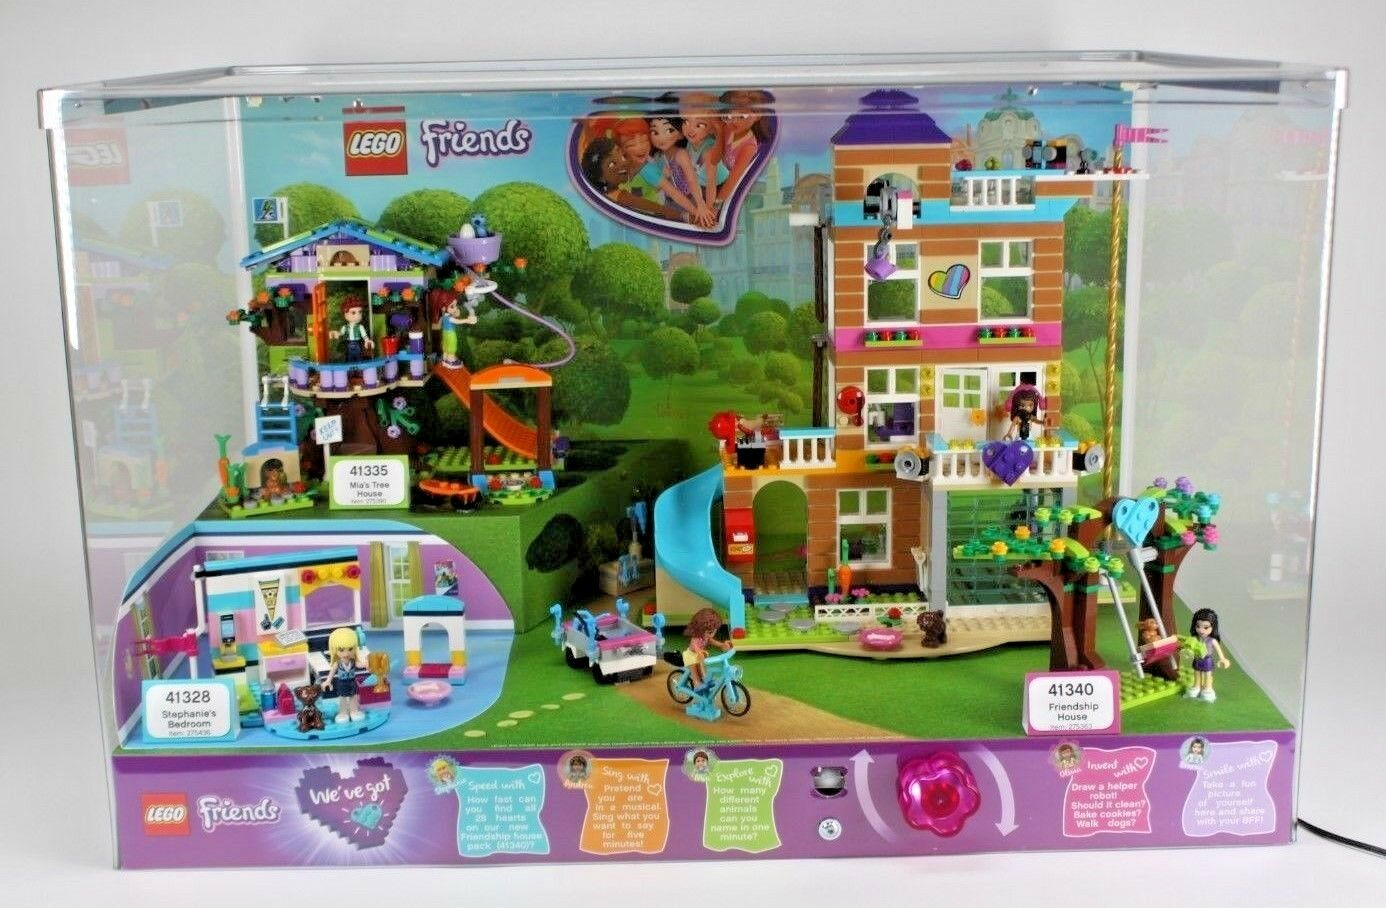 NEW IN BOX BOX BOX LEGO FRIENDS TOYS R US EXCLUSIVE LIGHTED STORE DISPLAY TOY 856ec0